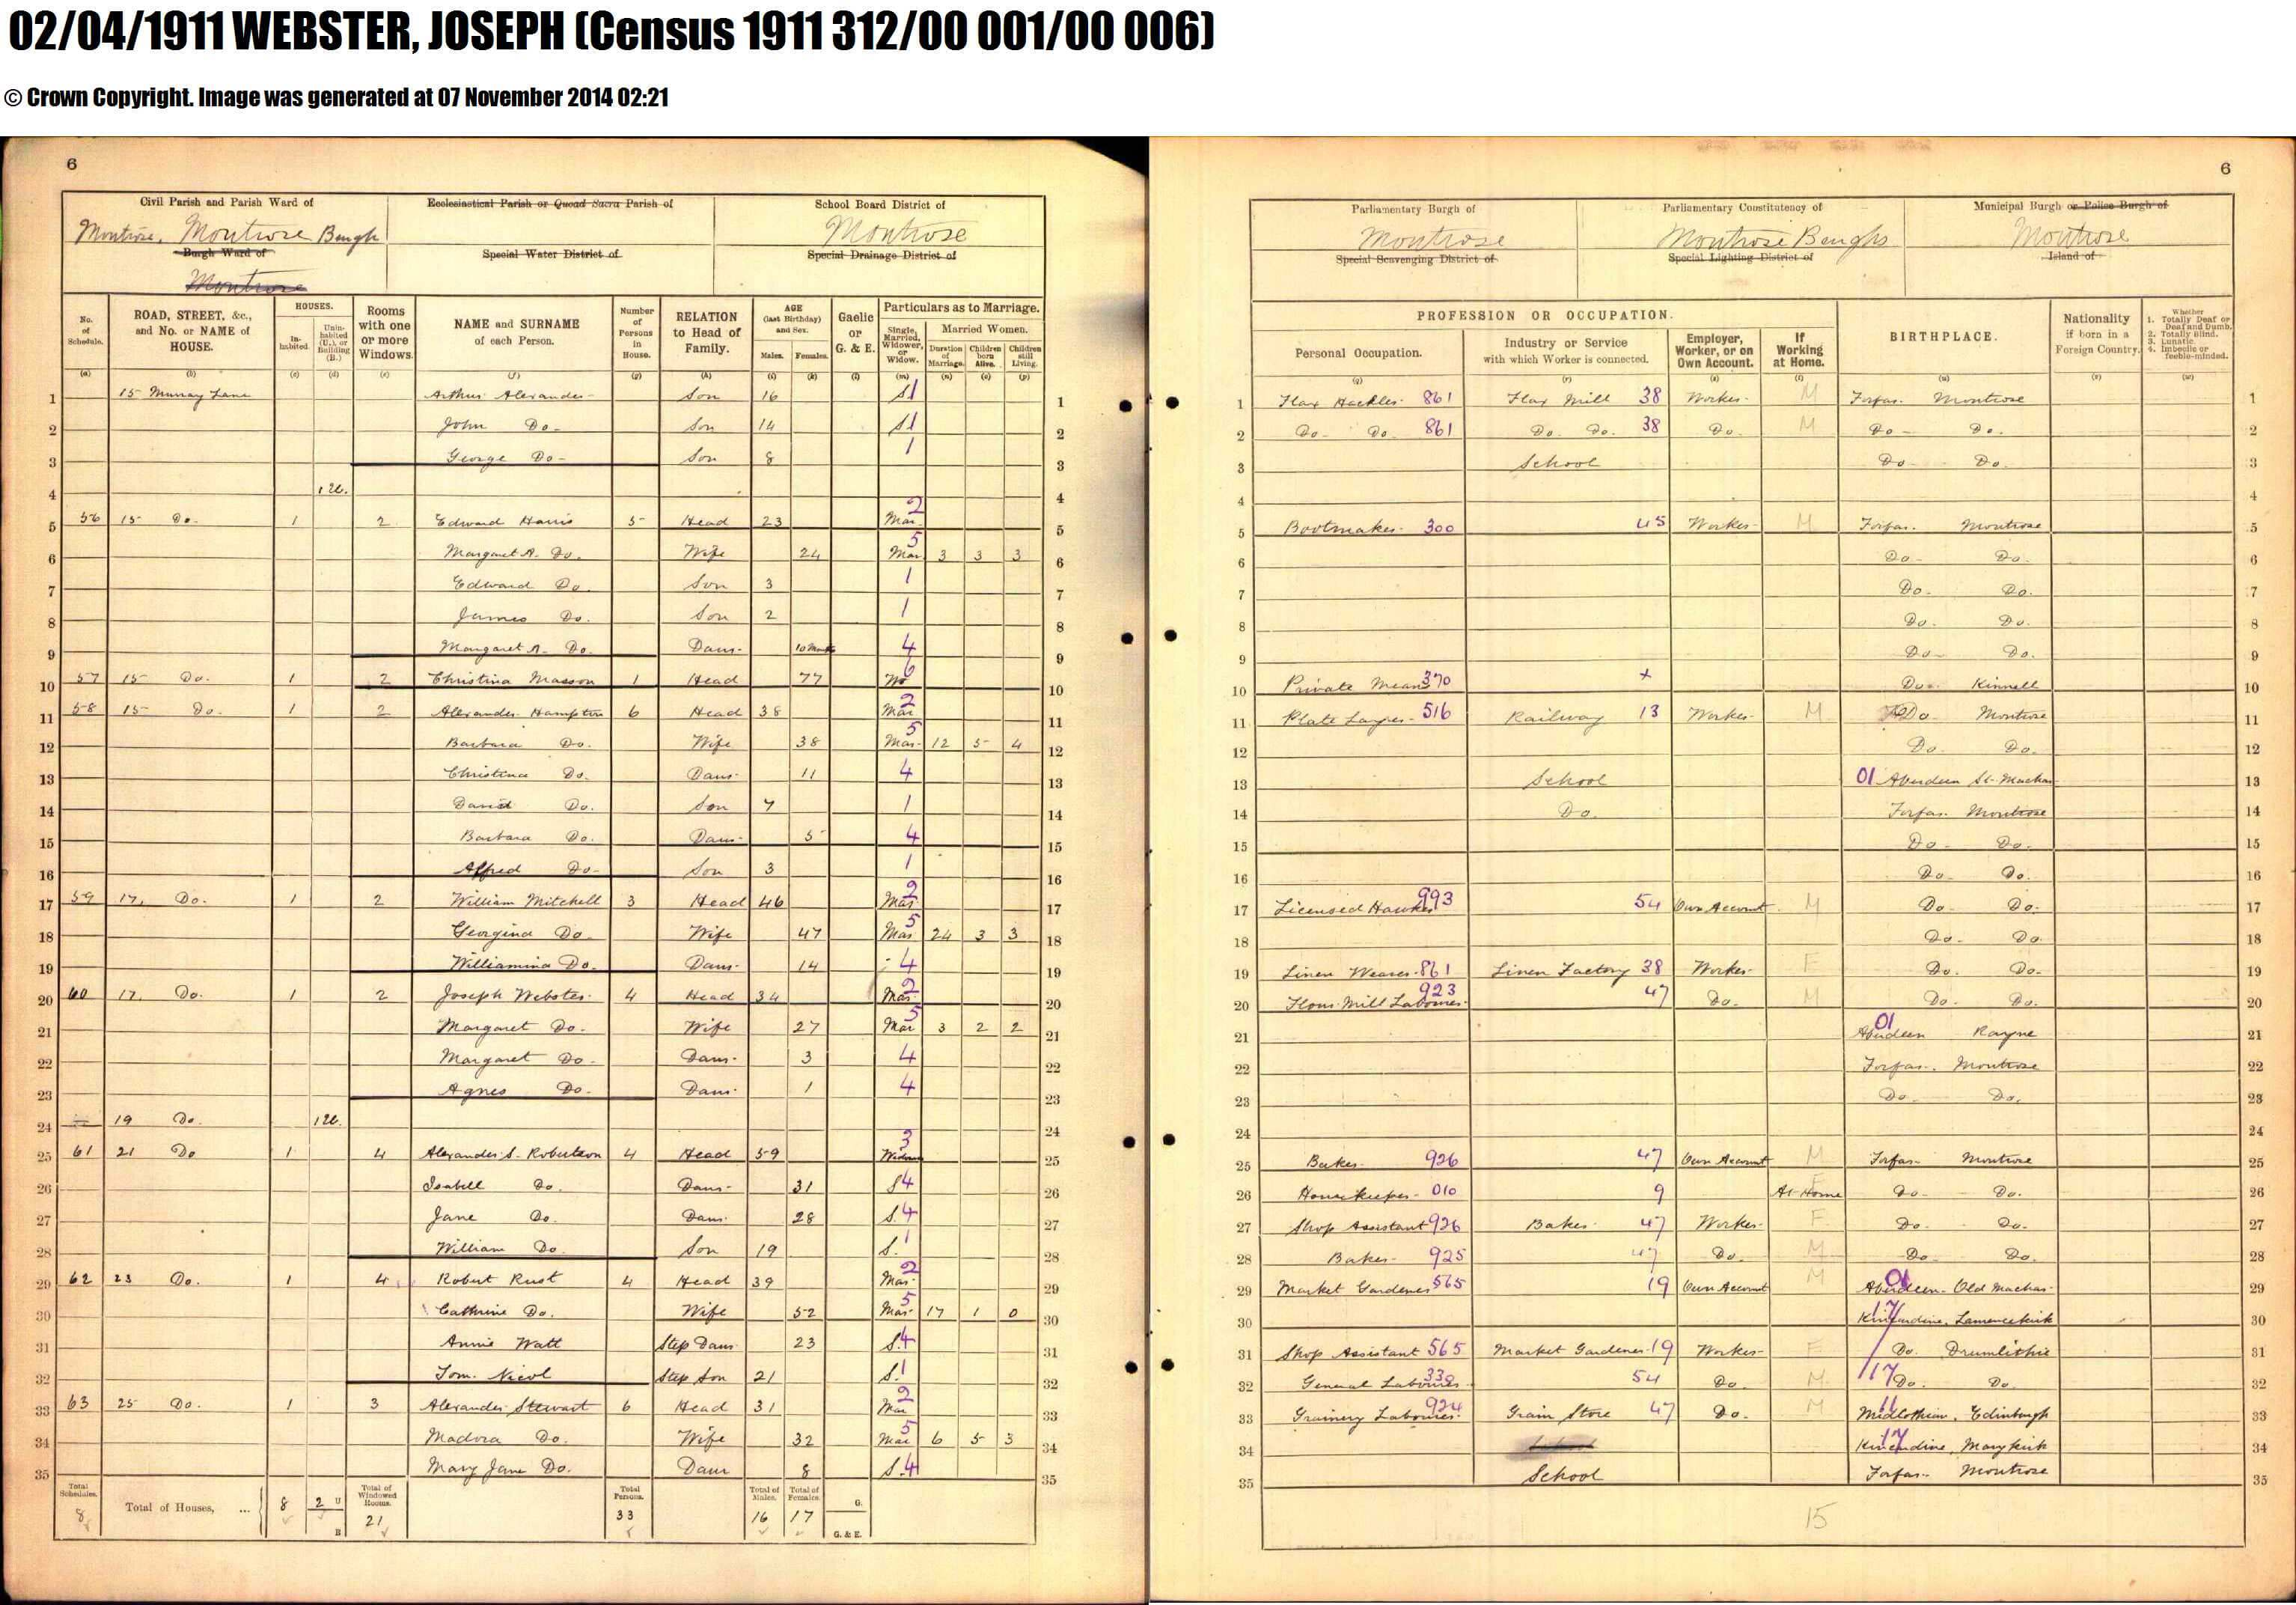 Joseph Webster 1911 Census